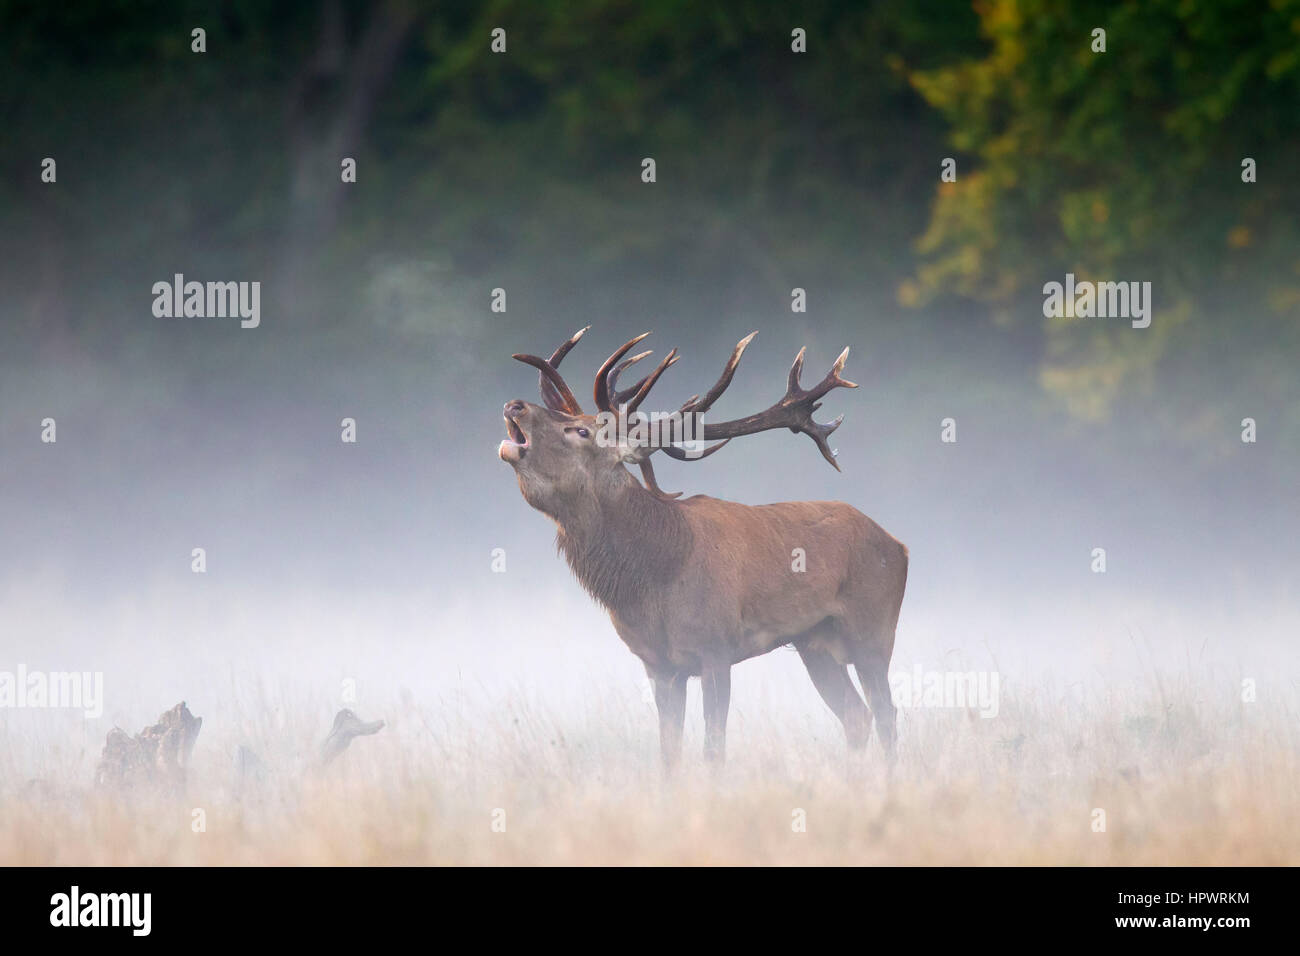 Red deer (Cervus elaphus) stag bellowing in grassland in the mist at forest's edge during the rut in autumn - Stock Image